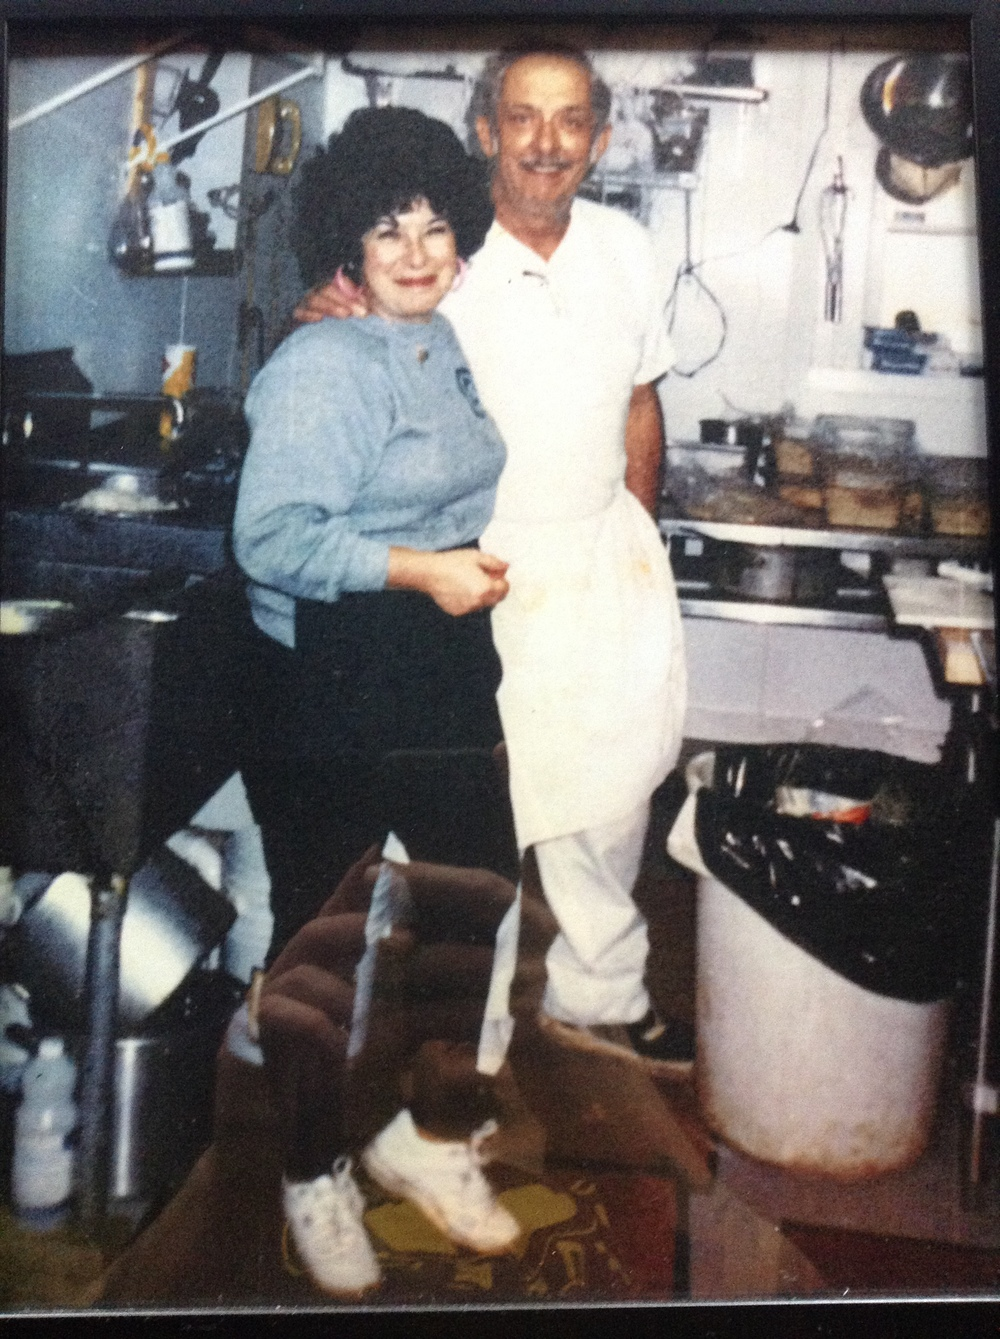 Lila and Jerry in 1989